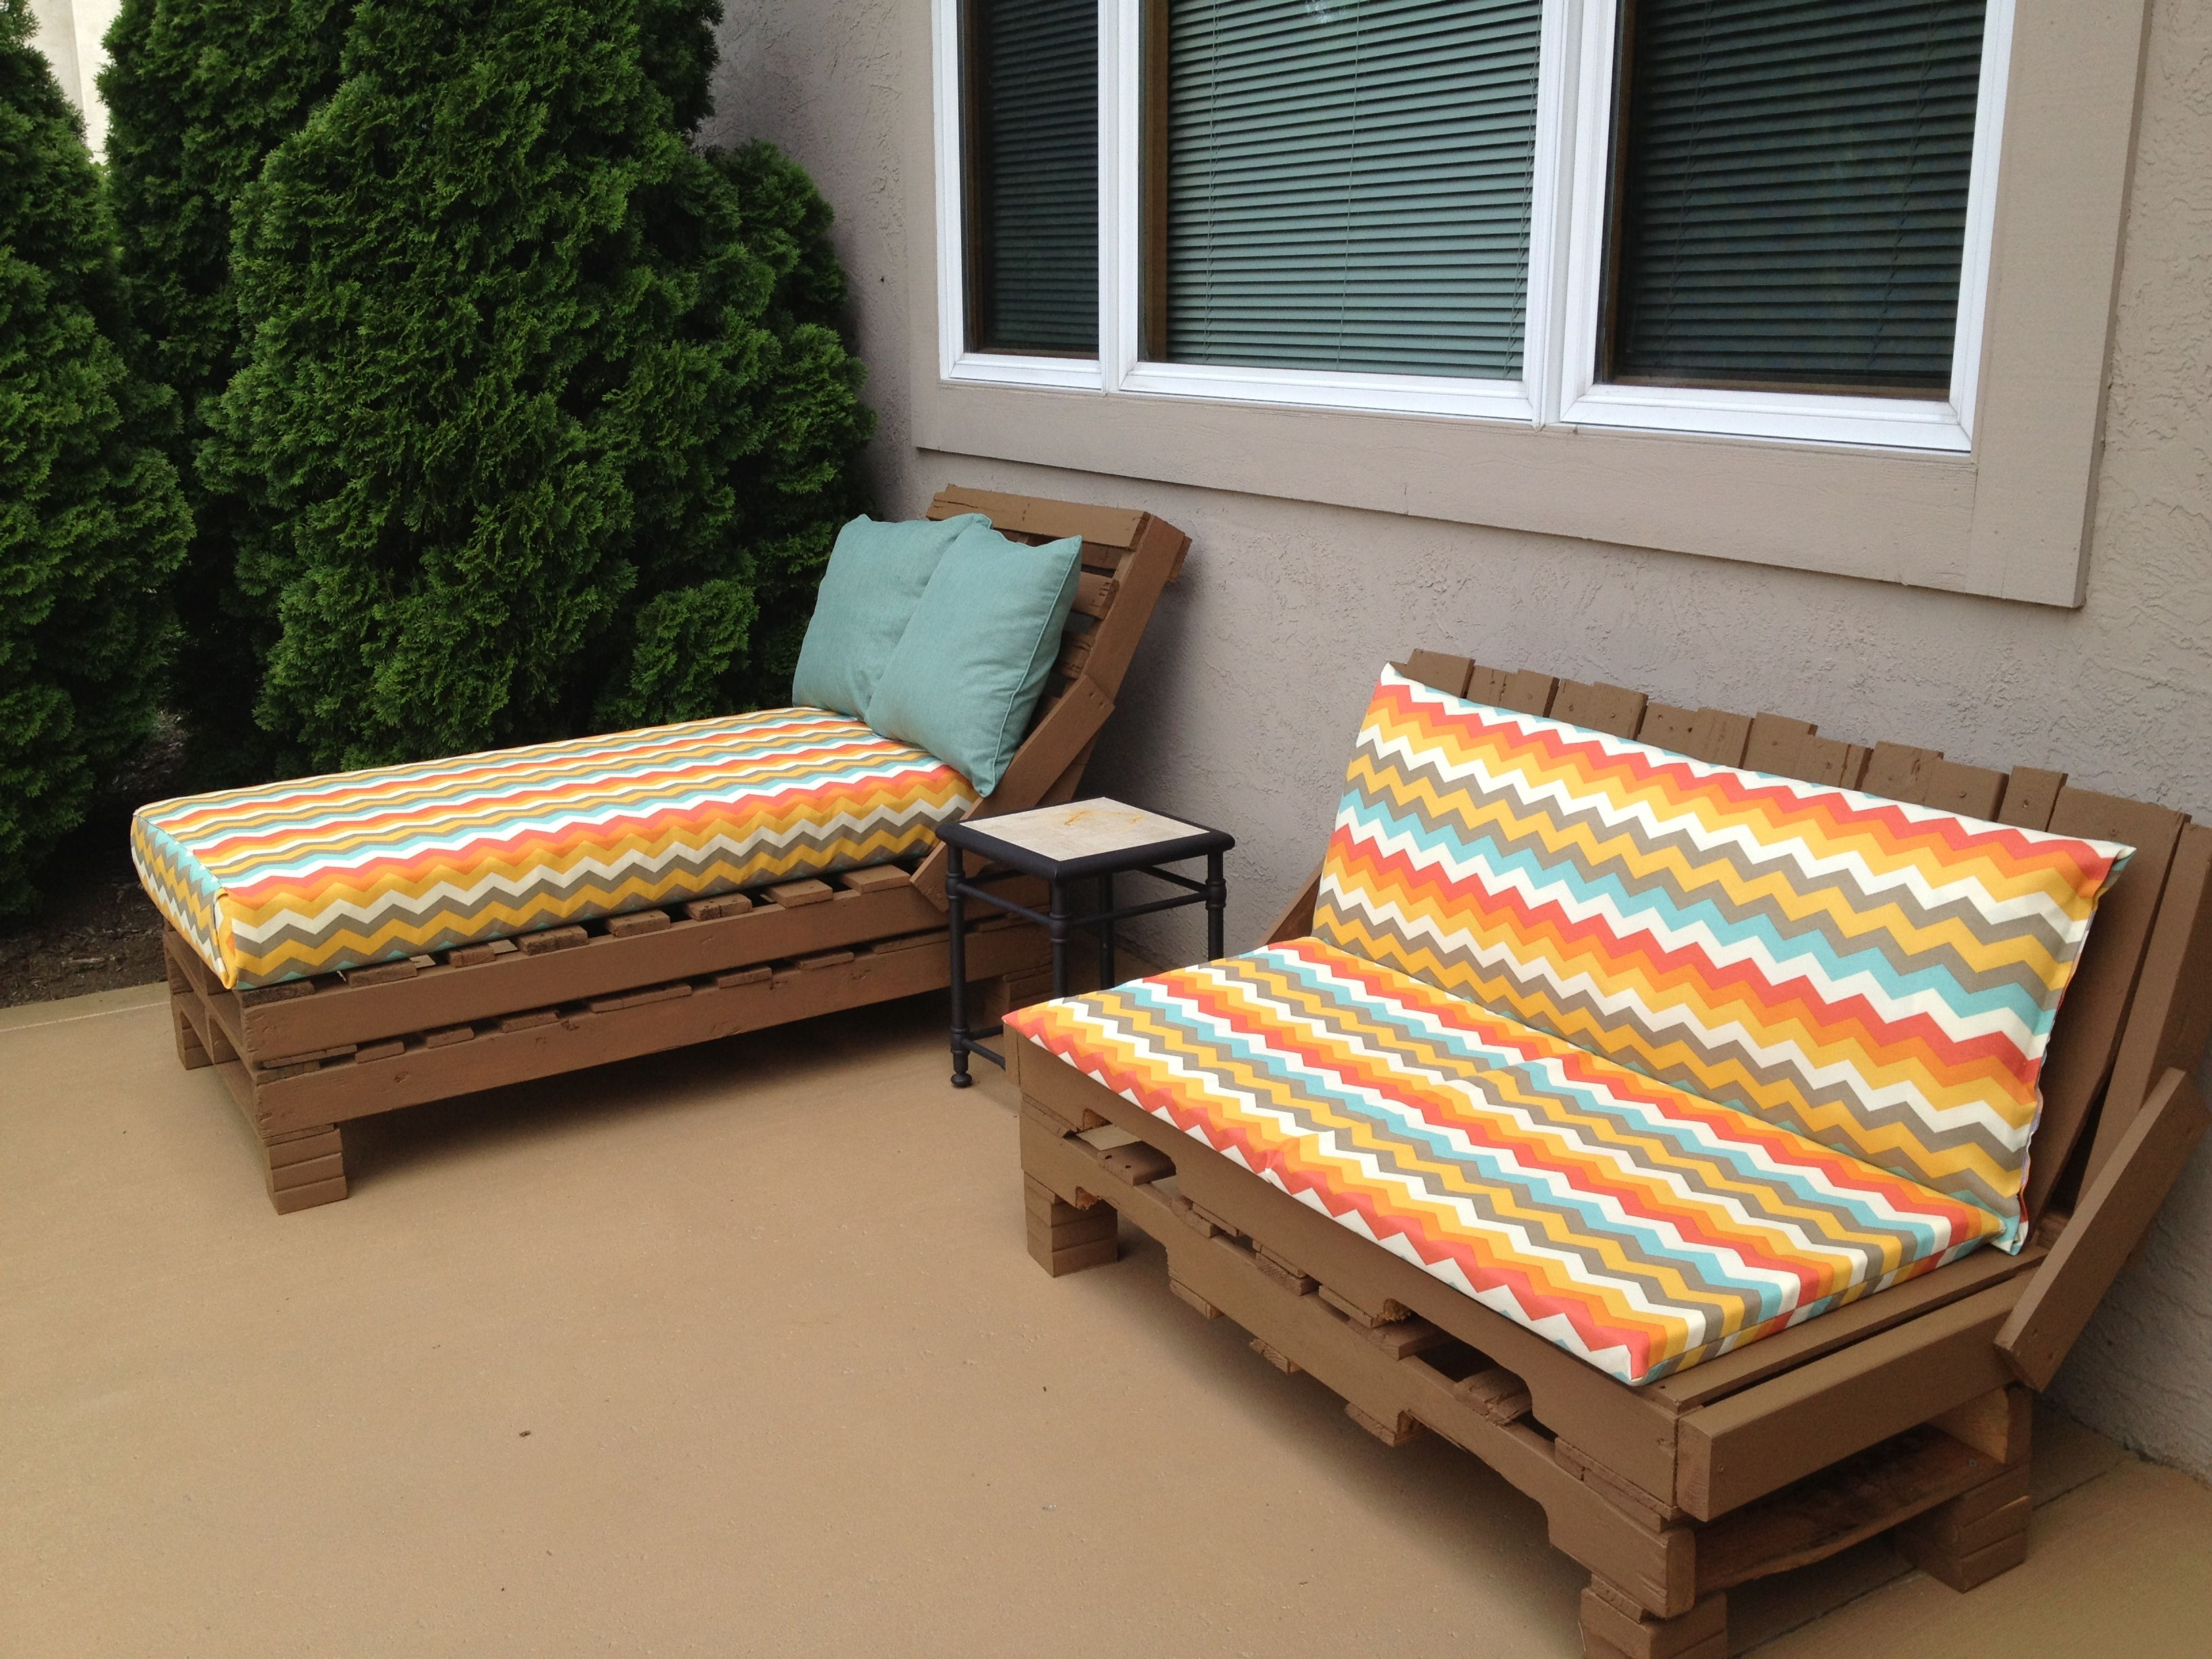 Outdoor Patio Furniture Made From Pallets pallet patio furniture: so easy! stack pallets, nail together